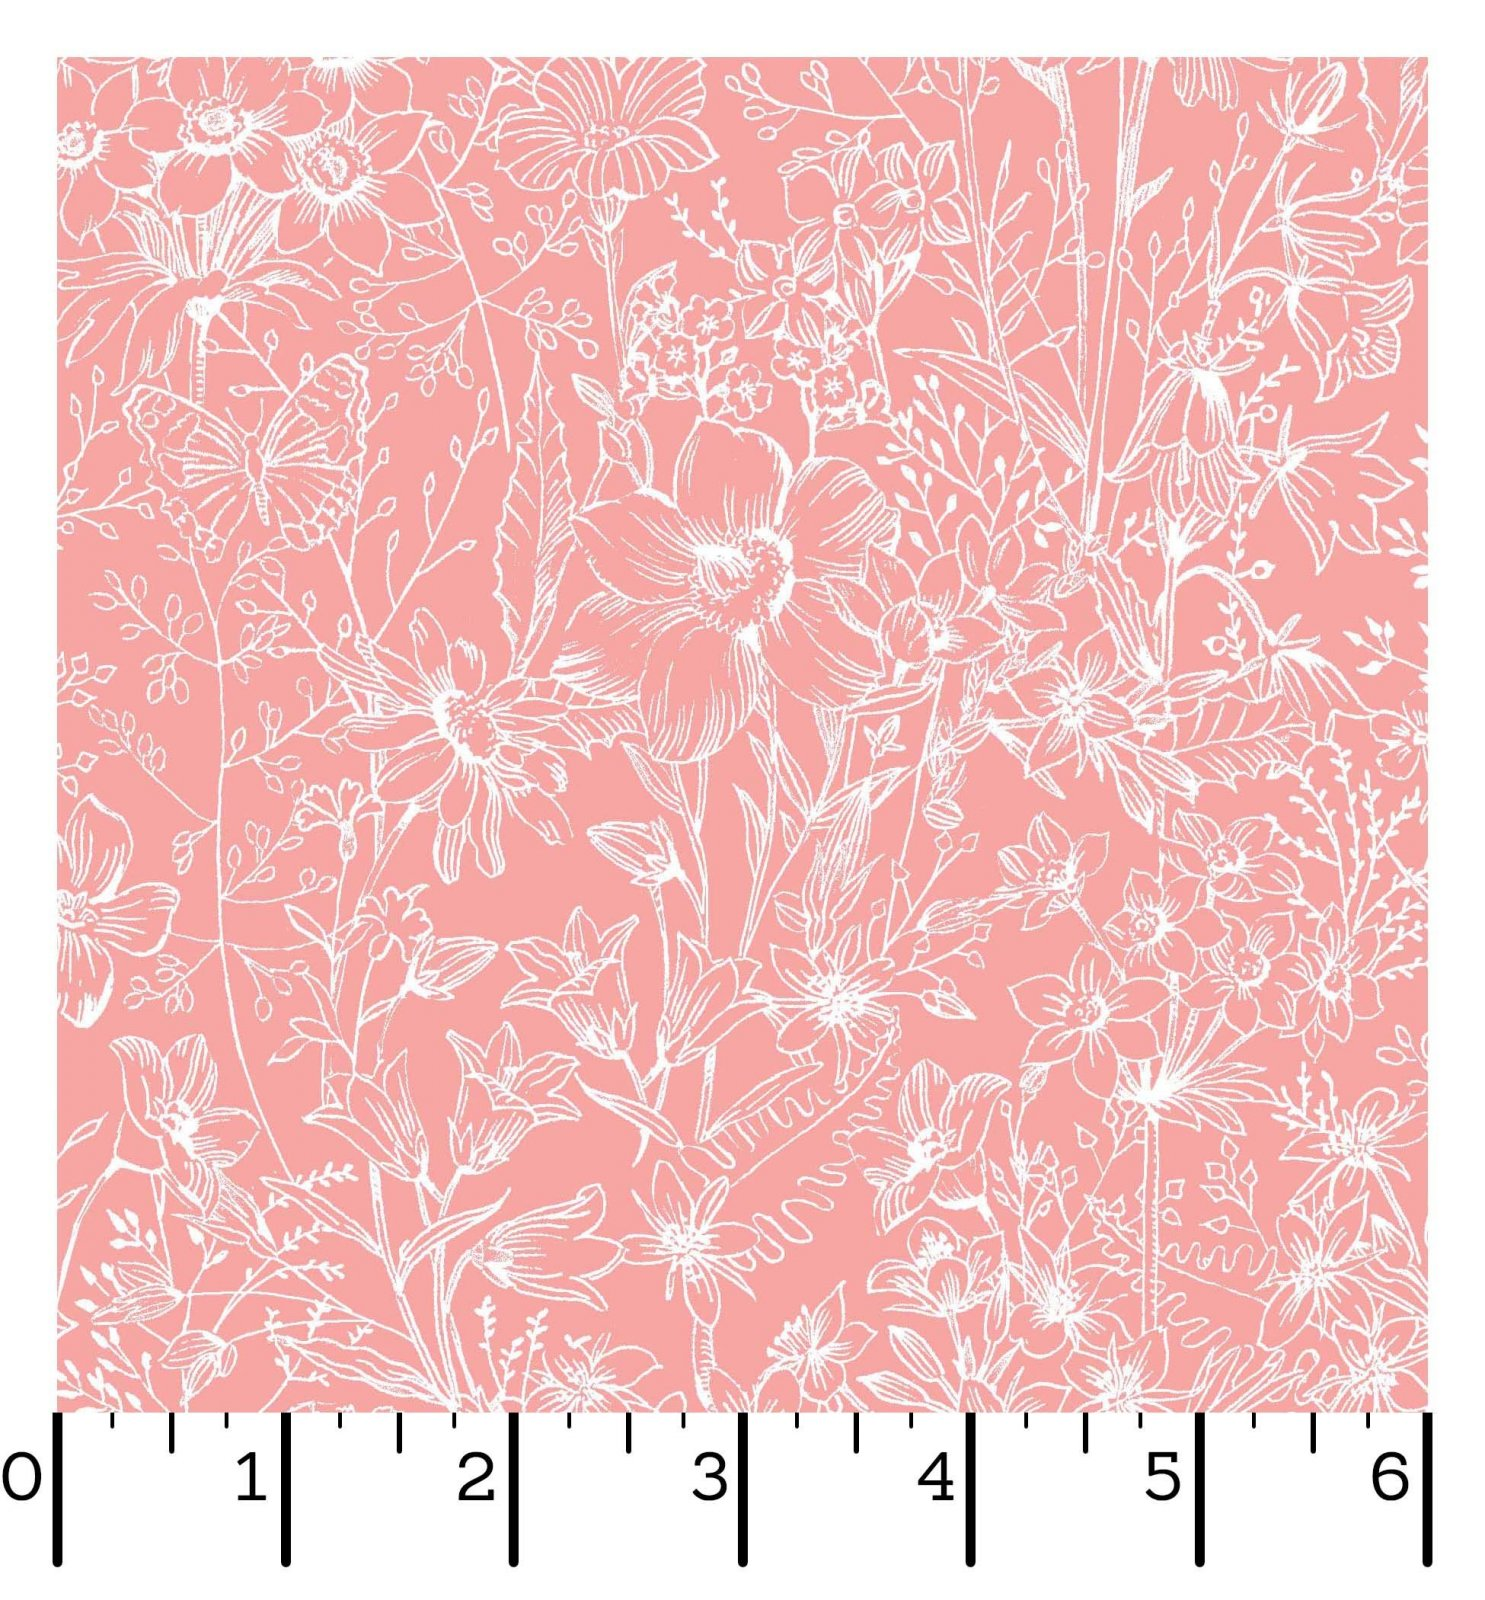 EESC-D10006 P - MEADOW EDGE BY MAYWOOD STUDIO MEADOW TOILE PEACH - ARRIVING IN MAY 2021